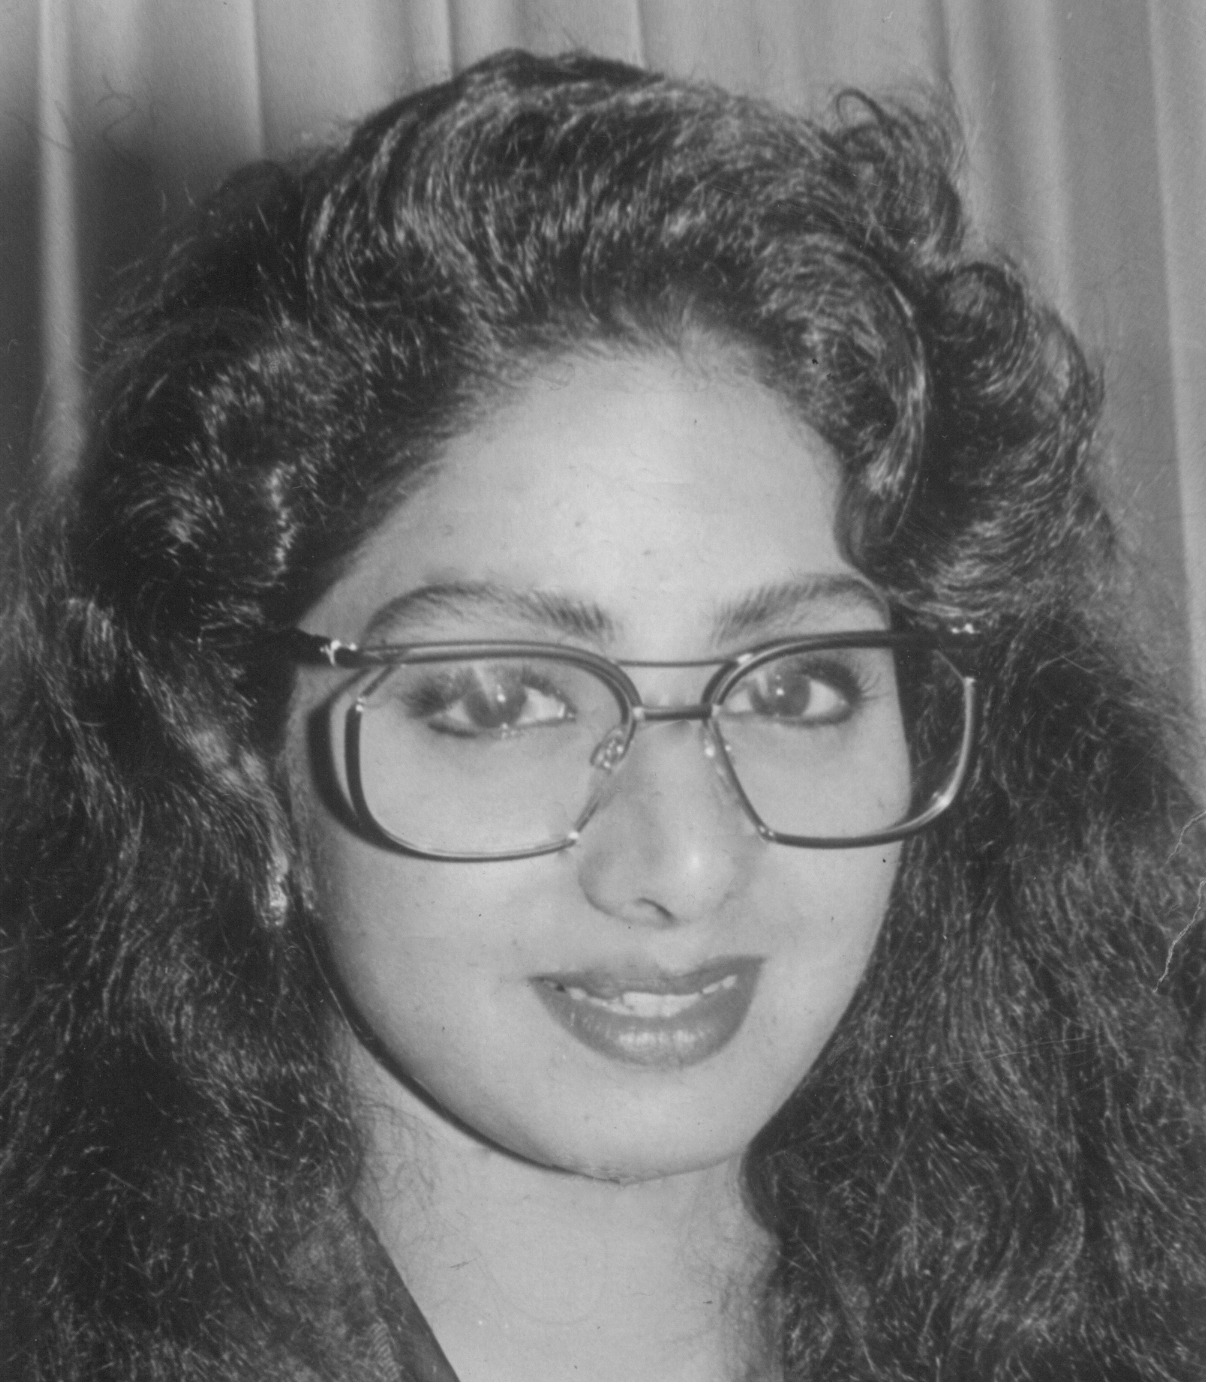 Bollywood Star Sridevi's Cause of Death Released